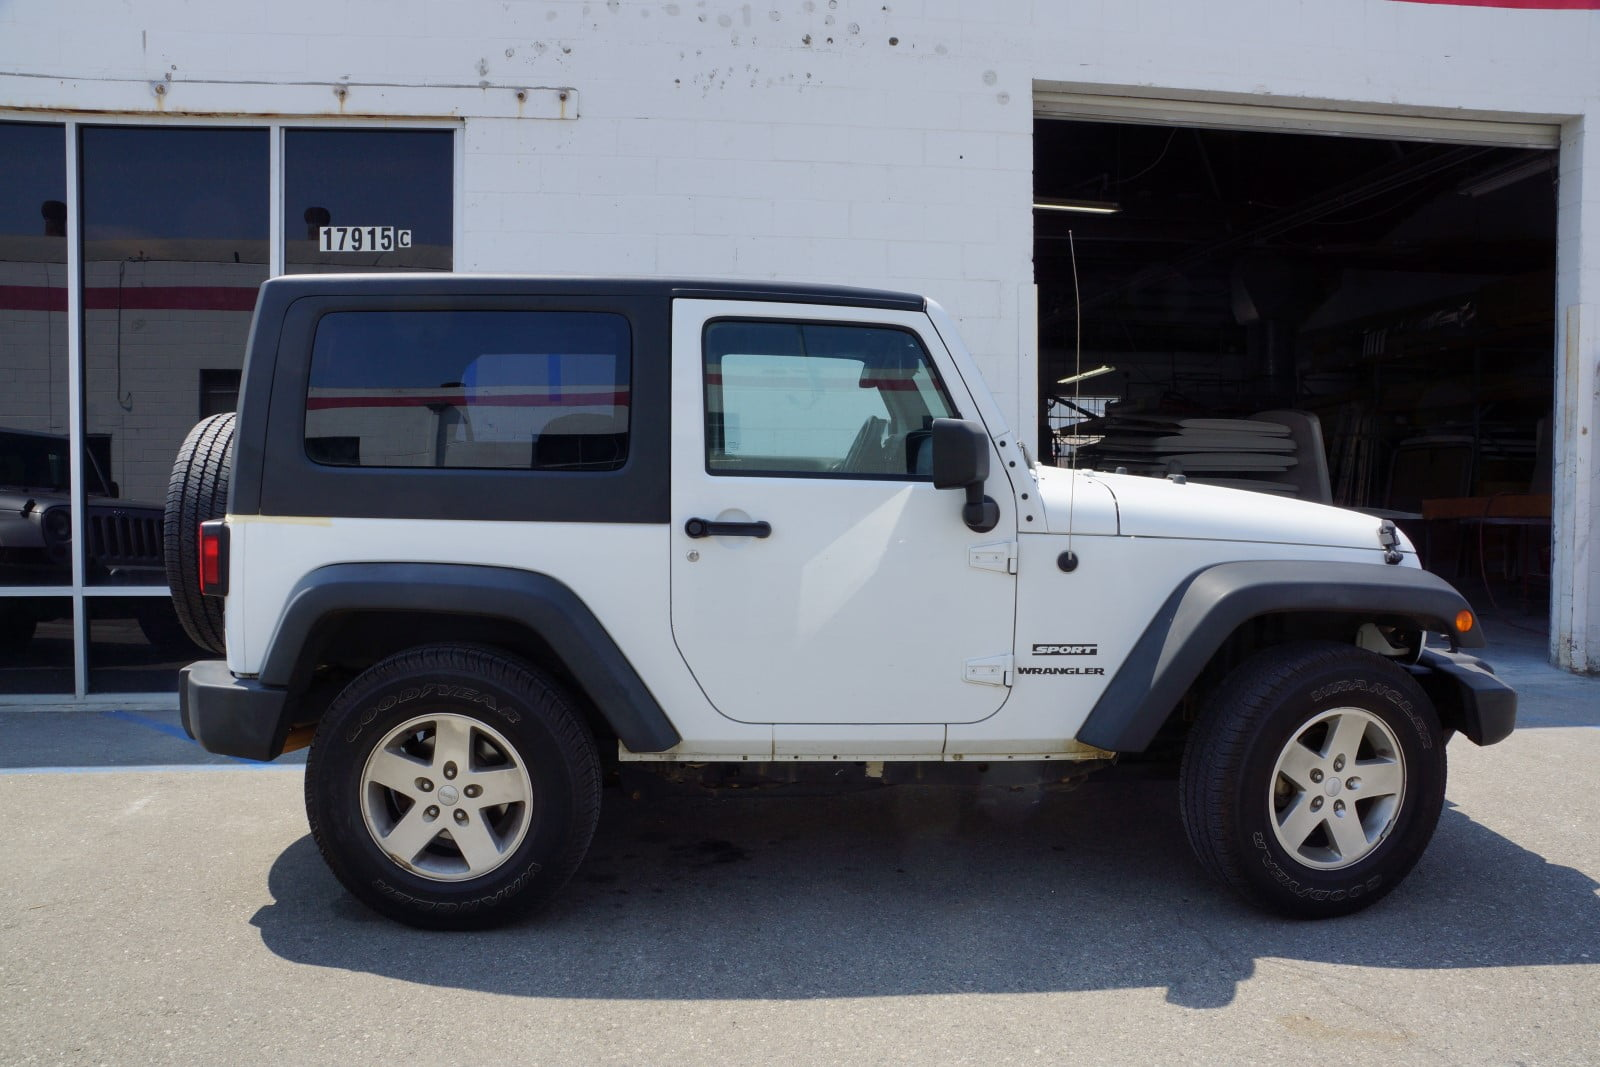 rally tops quality hardtop for jeep wrangler jk 2 door 2007 present. Cars Review. Best American Auto & Cars Review